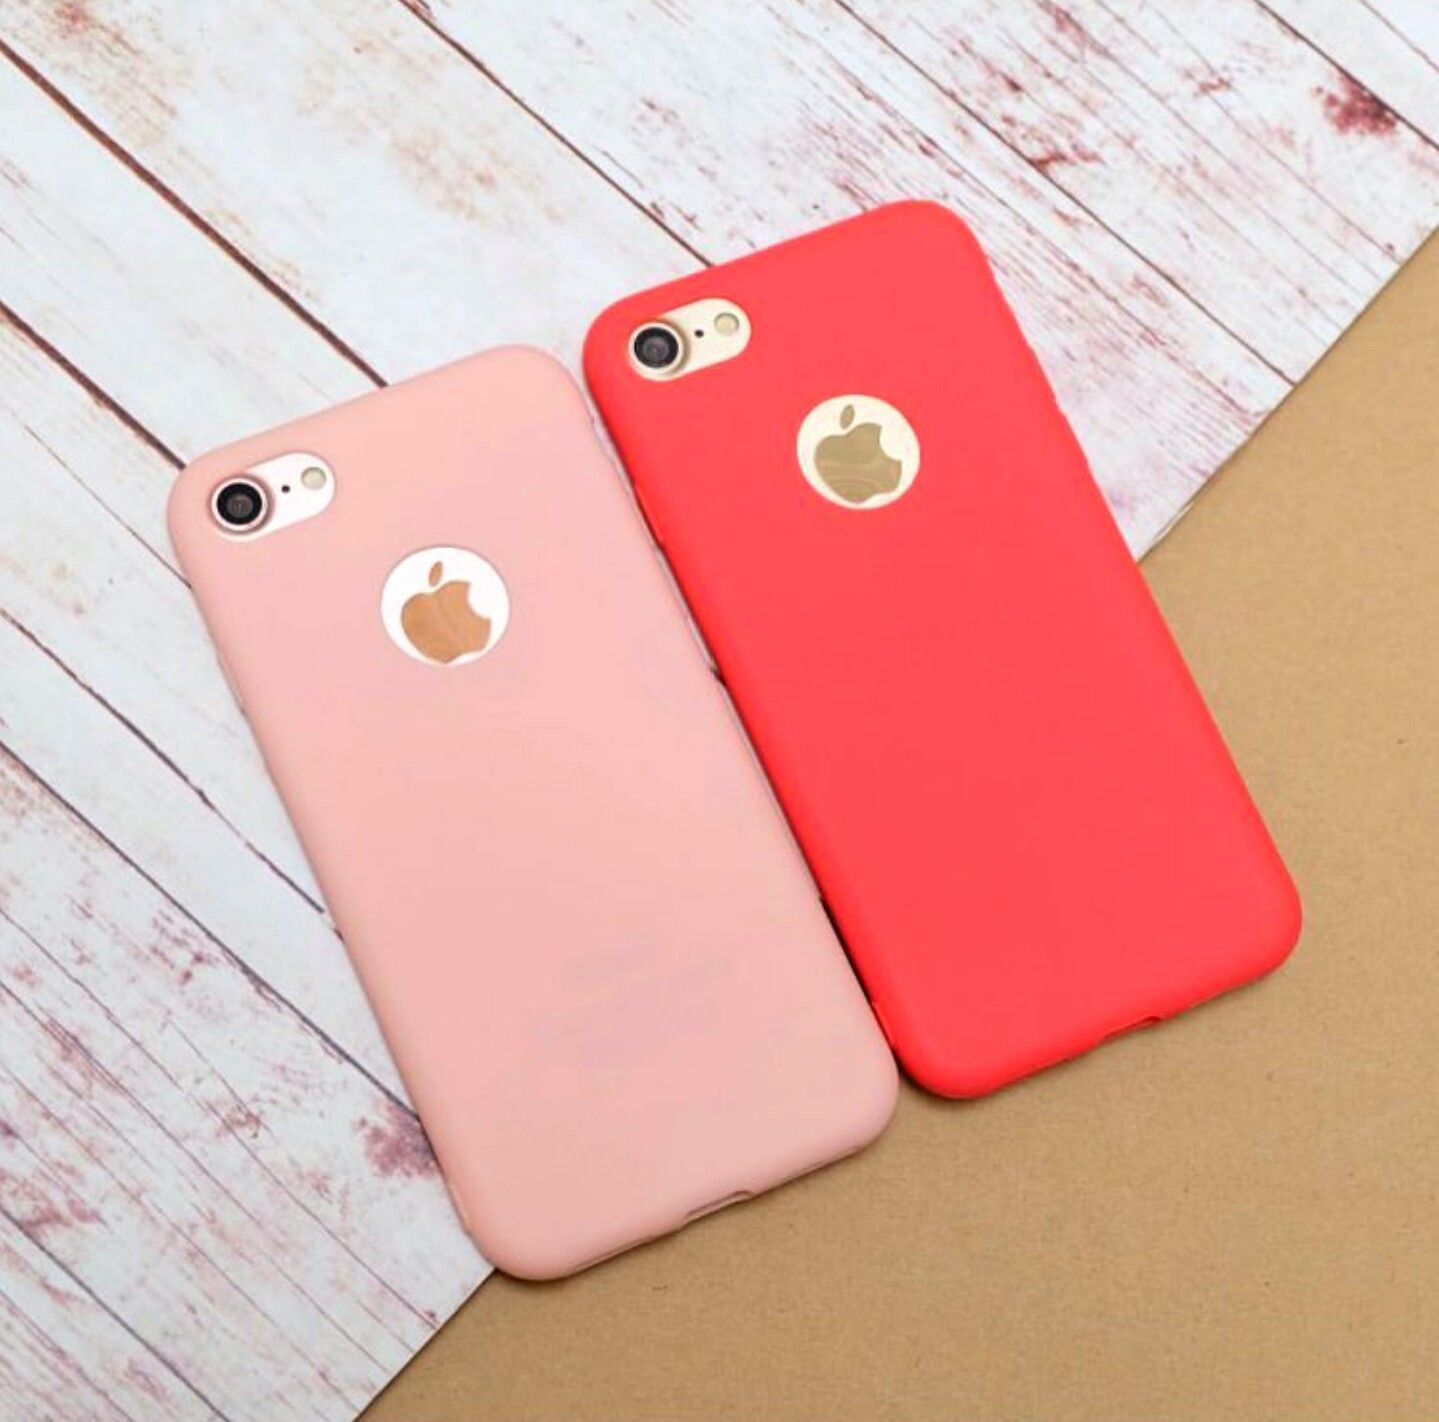 5d8283041d0 Matte Candy Color Silicone Soft iPhone 7 / 8 Cases in 2019 | iPhone ...